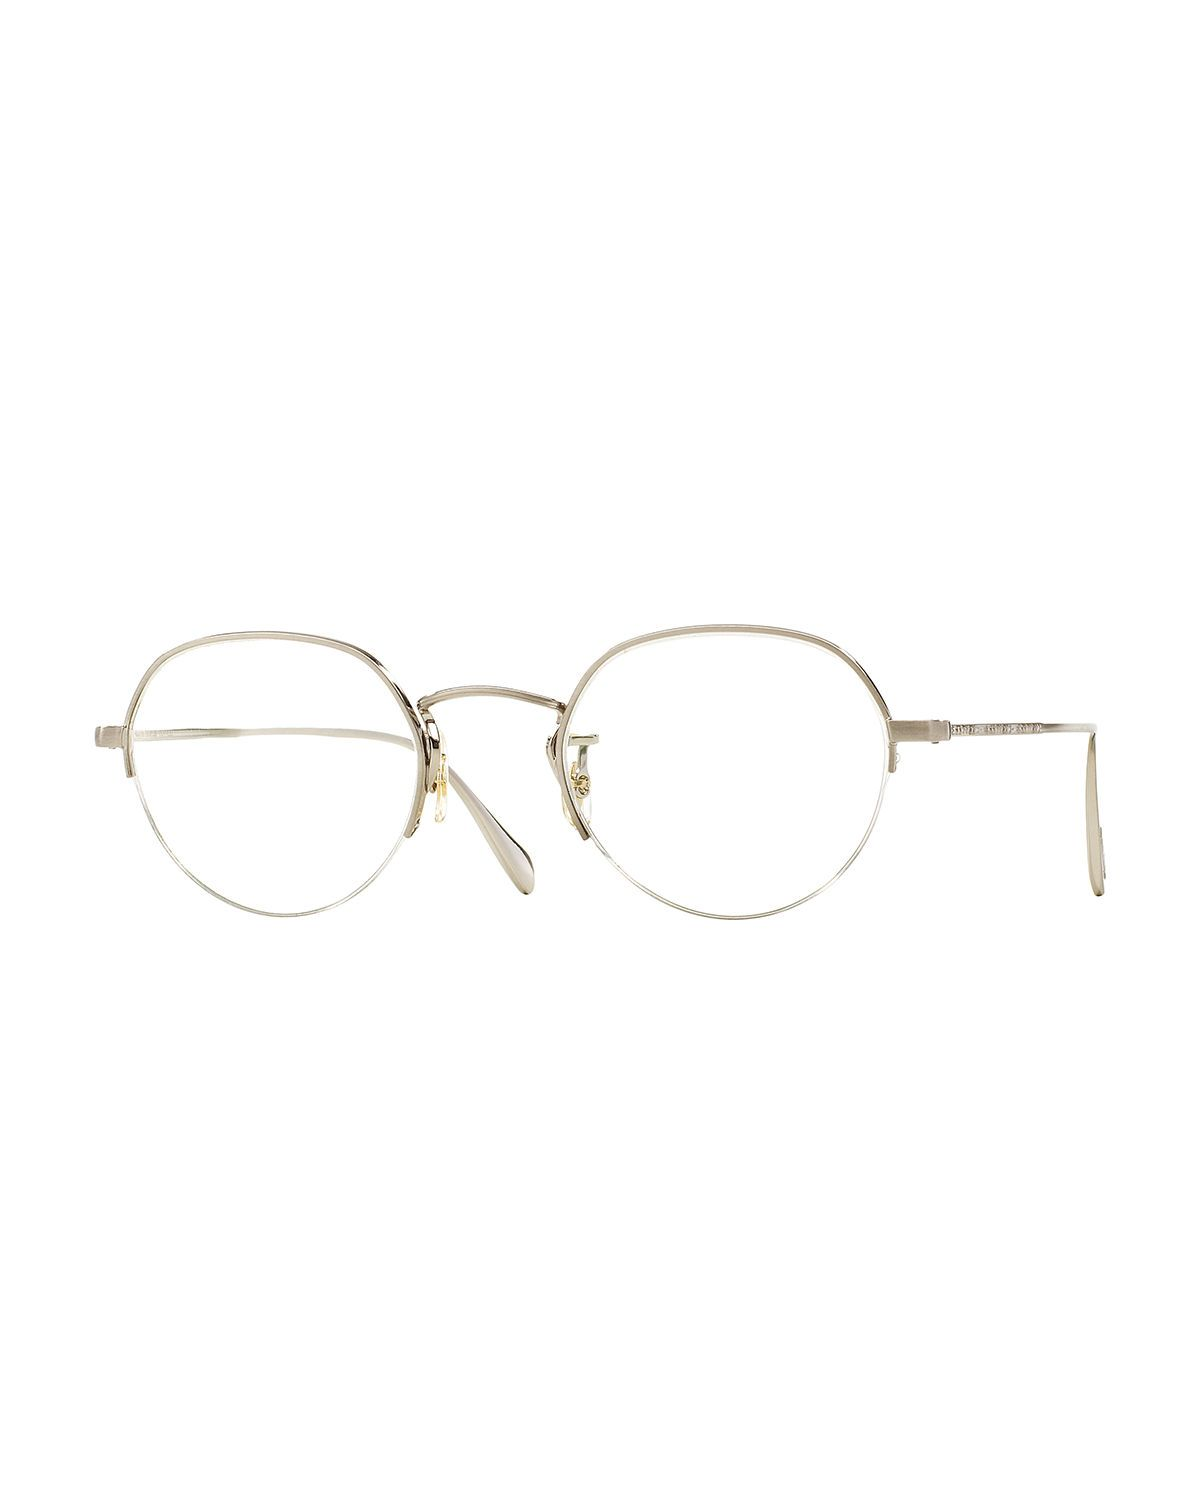 Oliver Peoples Roland Round Optical Frames | OPT | Pinterest ...